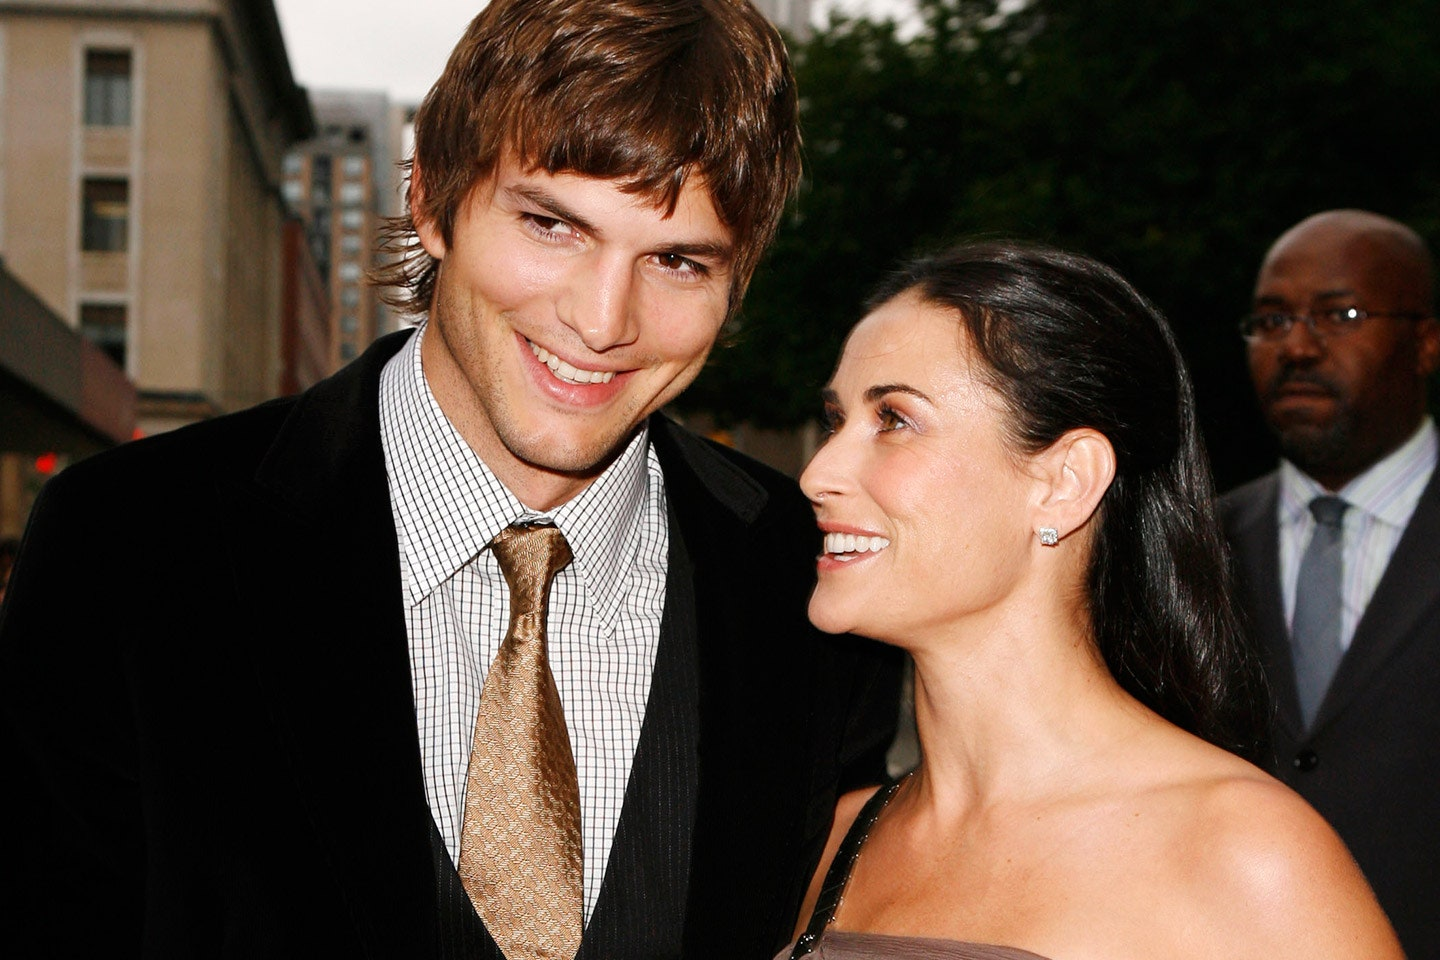 Married to demi moore